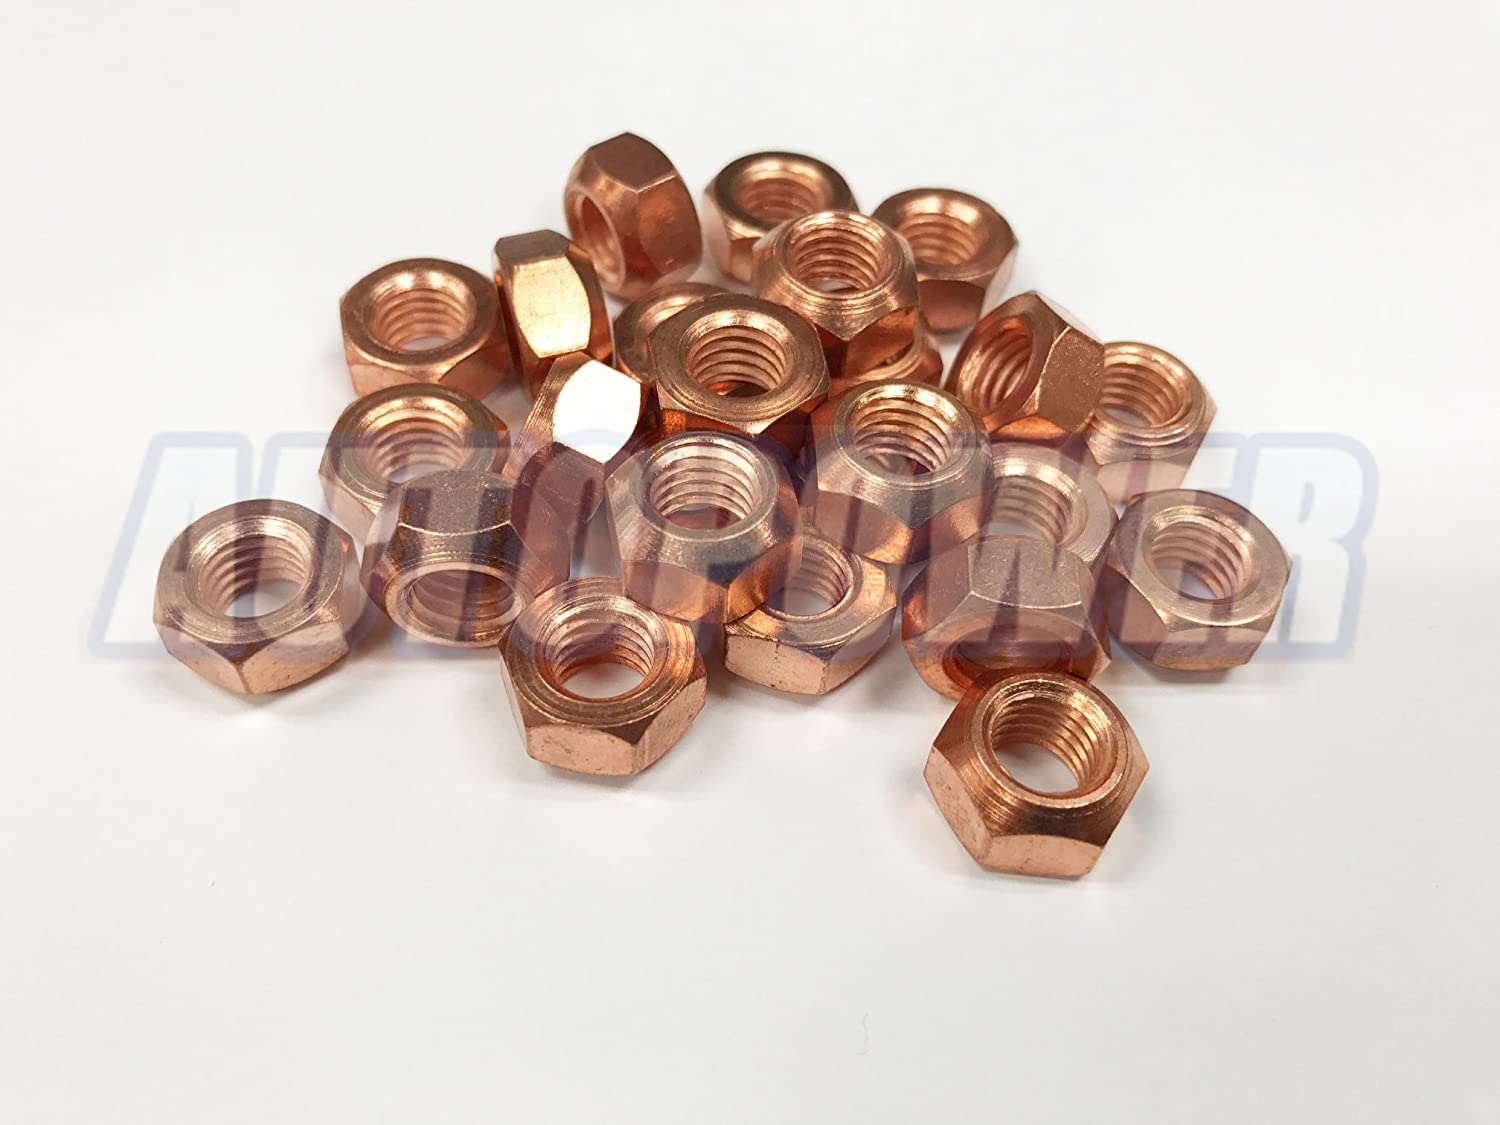 25x M8 Copper Flashed Exhaust Manifold 8mm Nut - High Temperature Nuts AutoPower